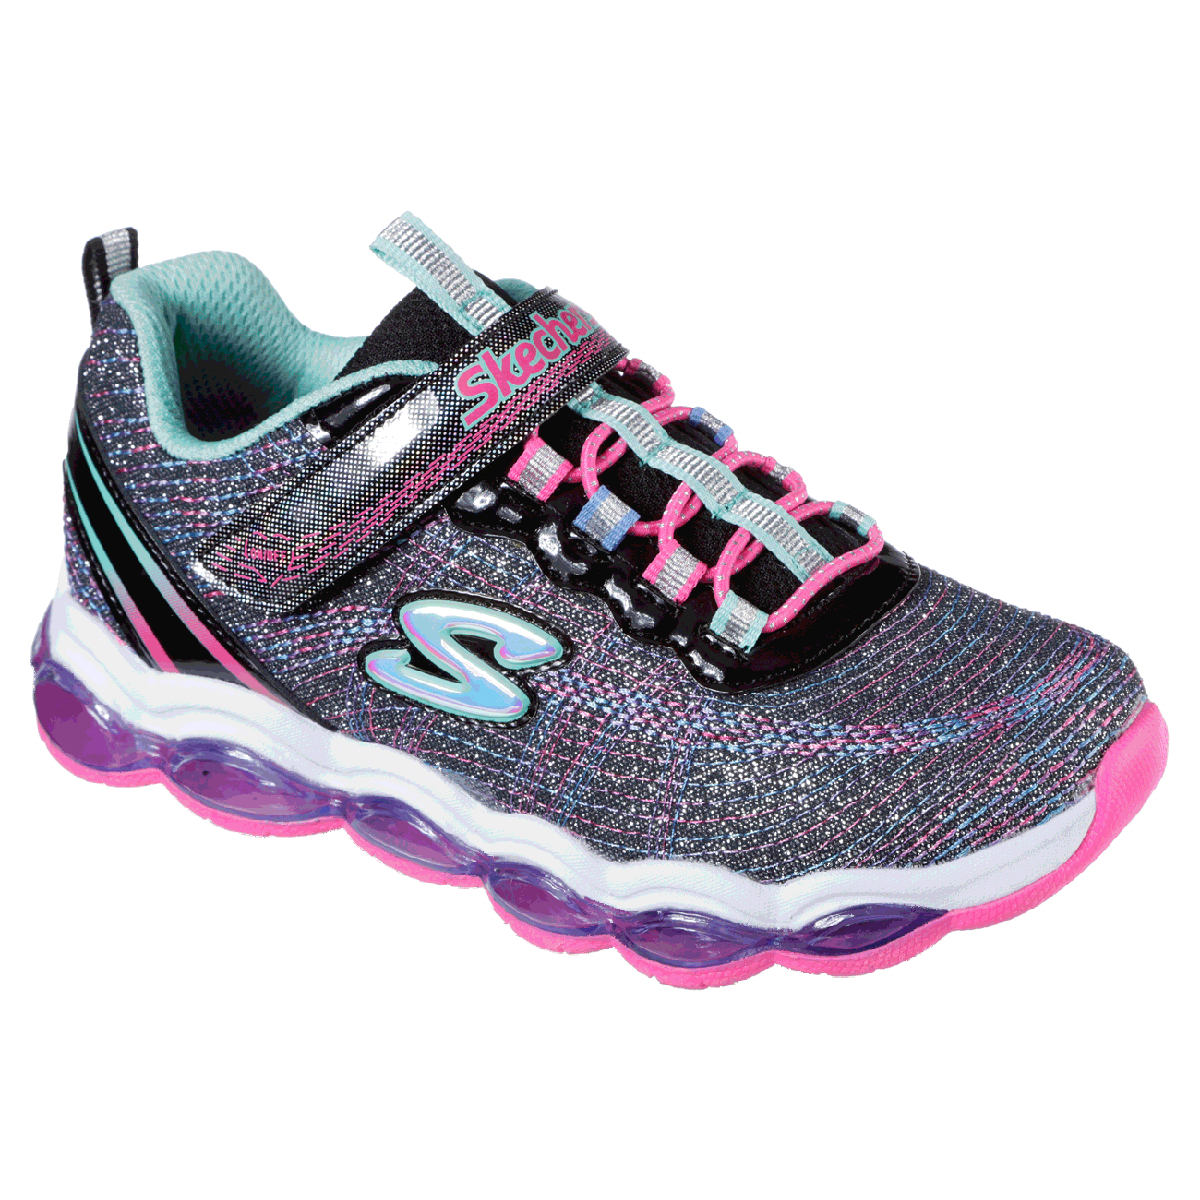 Skechers Girls' Glimmer Lites Shoes - Black, 11